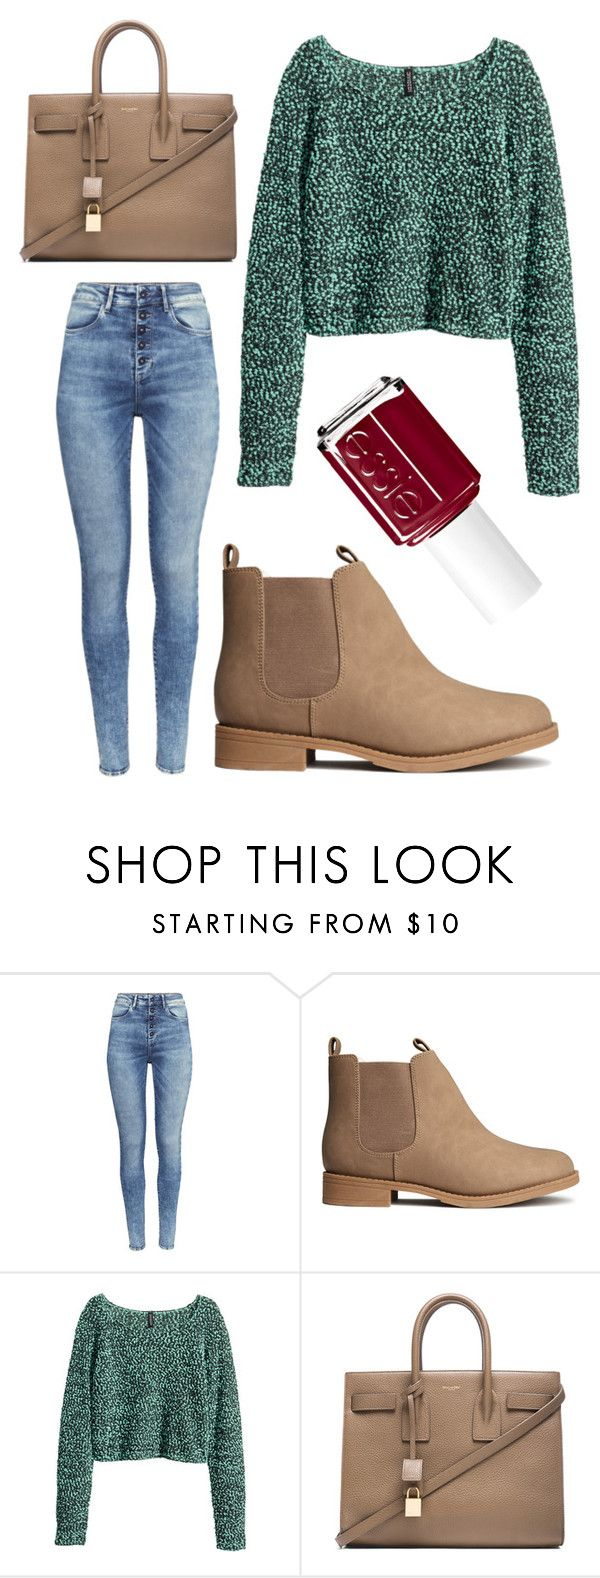 """()"" by moria801 ❤ liked on Polyvore featuring H&M, Yves Saint Laurent and Essie"